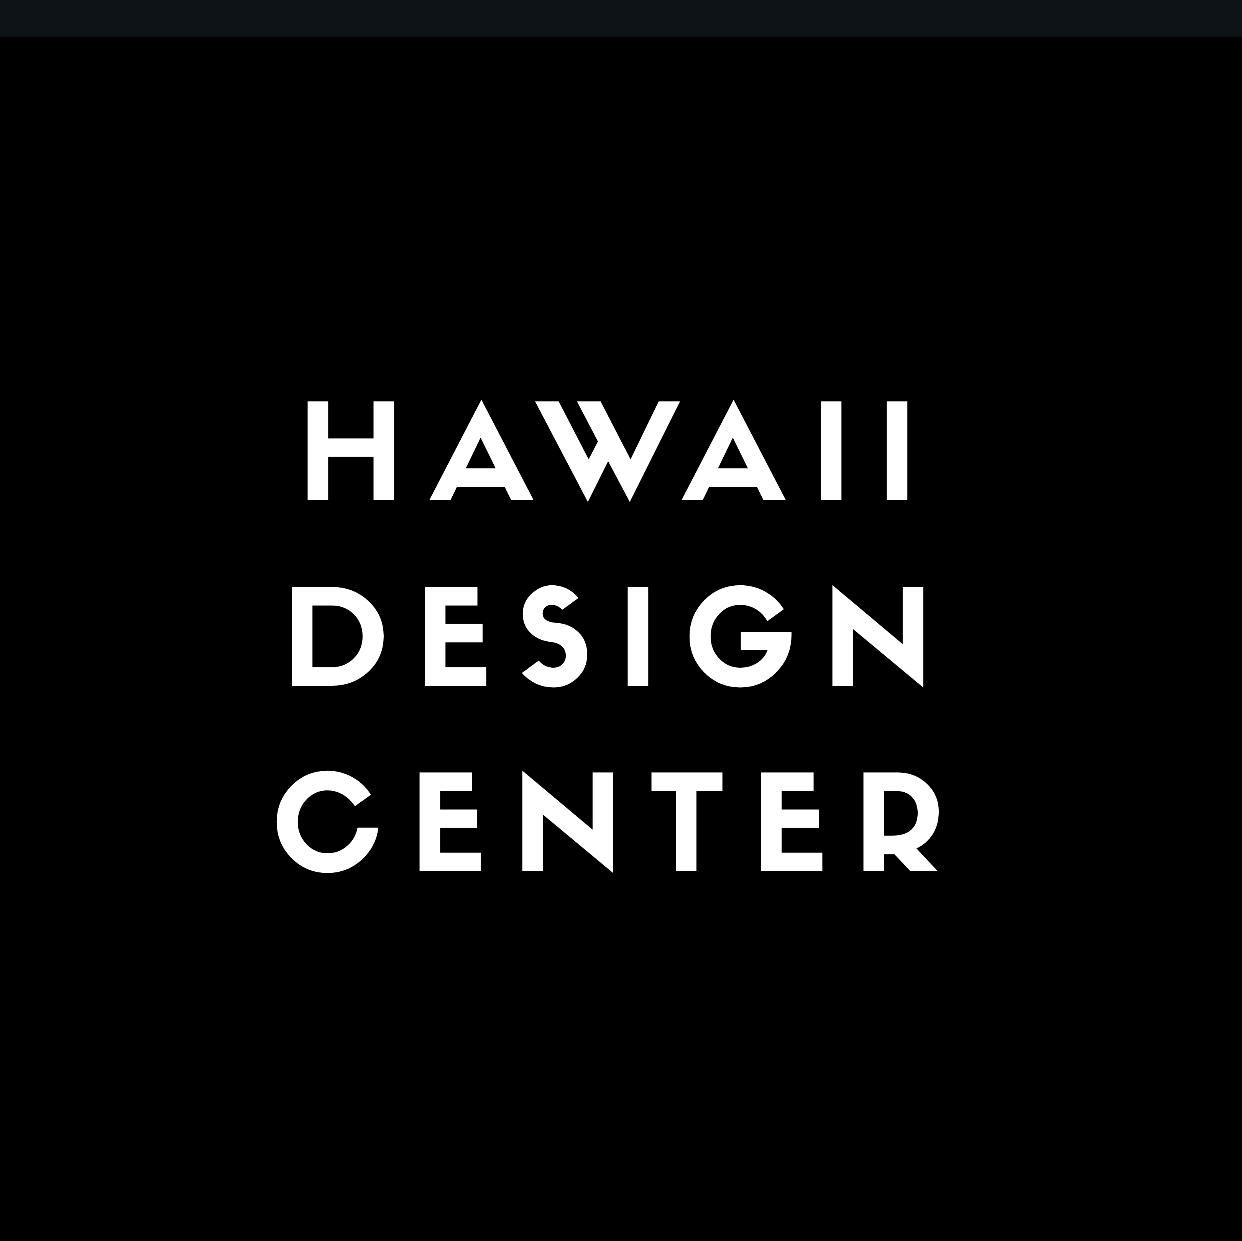 HAWAII DESIGN CENTER